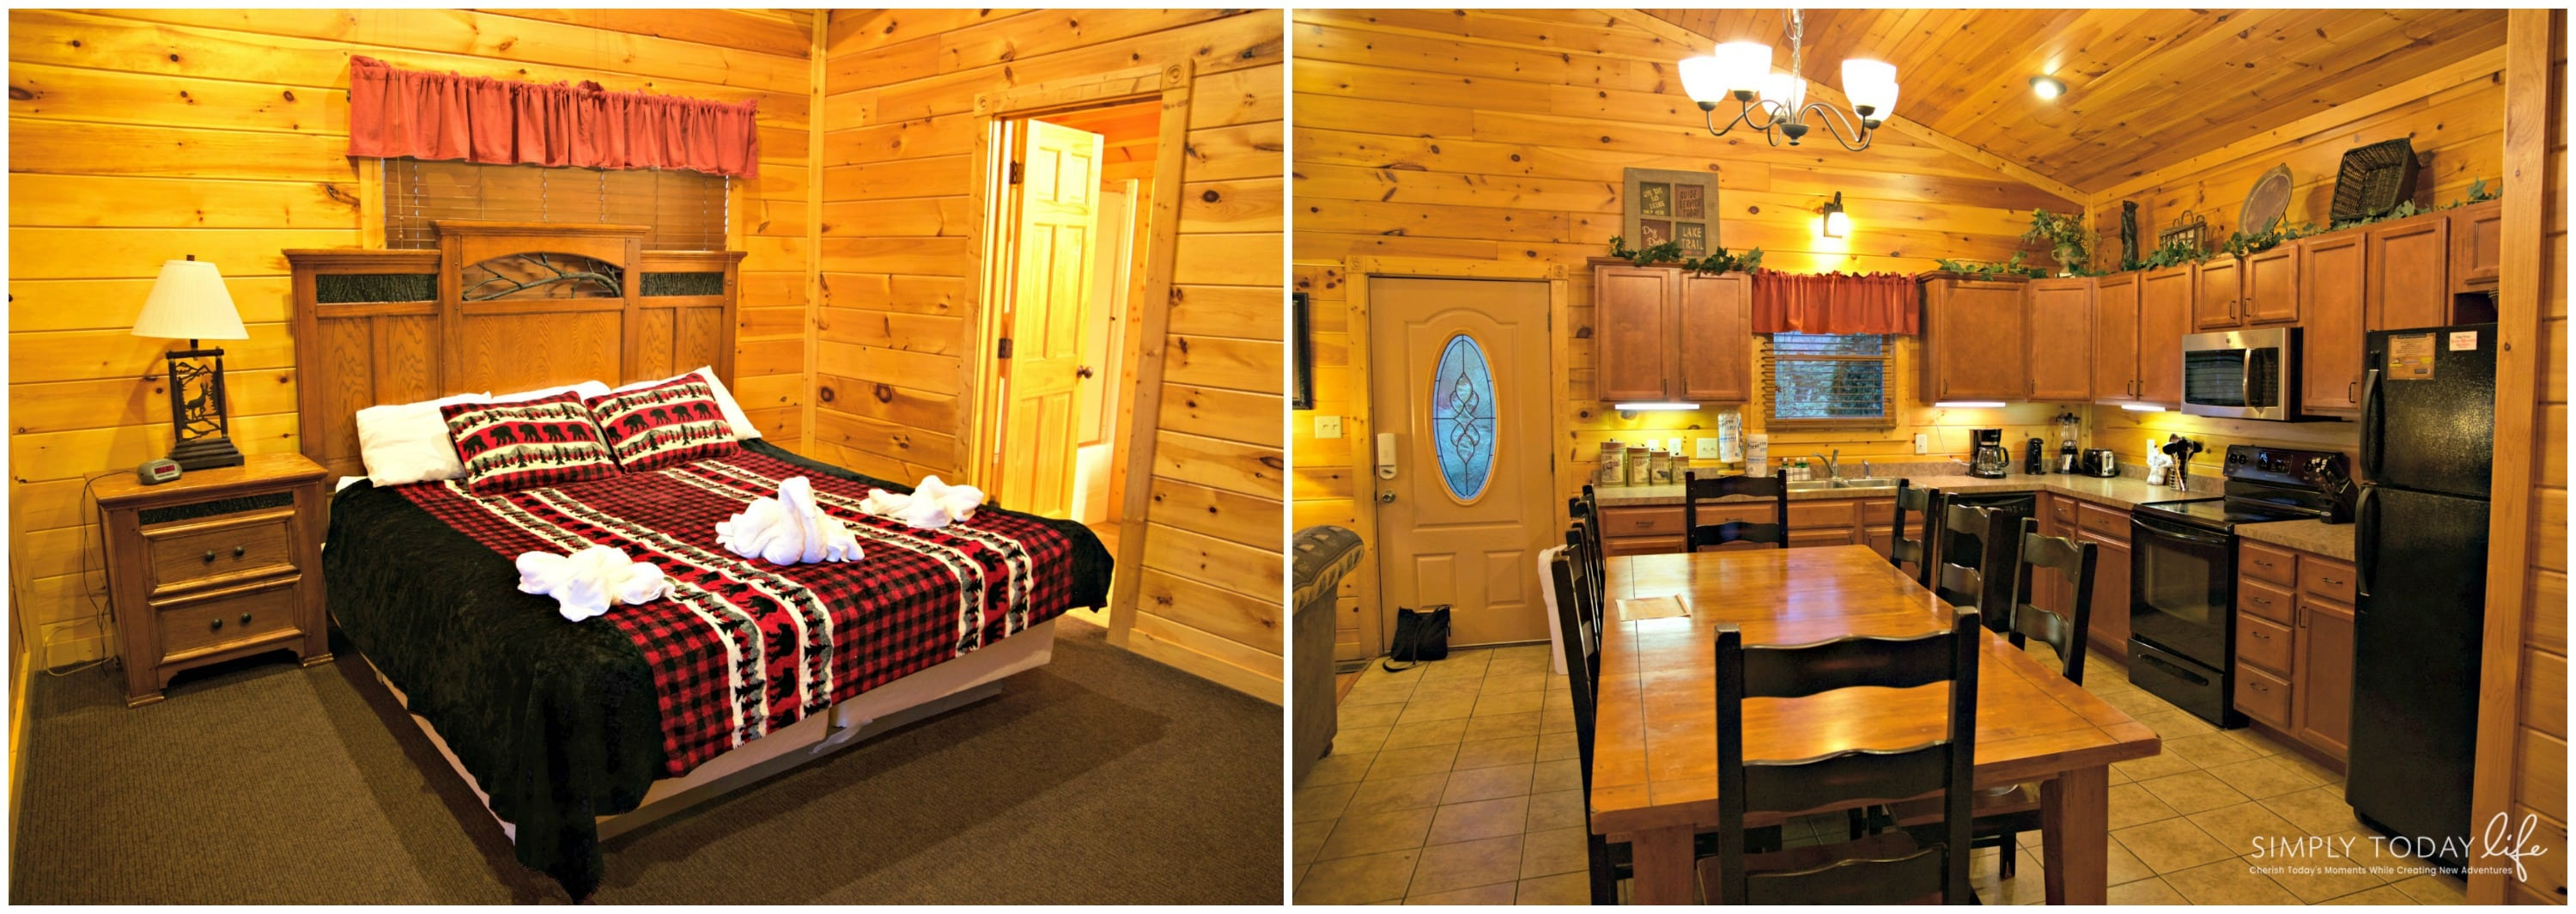 Best Cabins In Gatlinburg TN - Room Tour - simplytodaylife.com